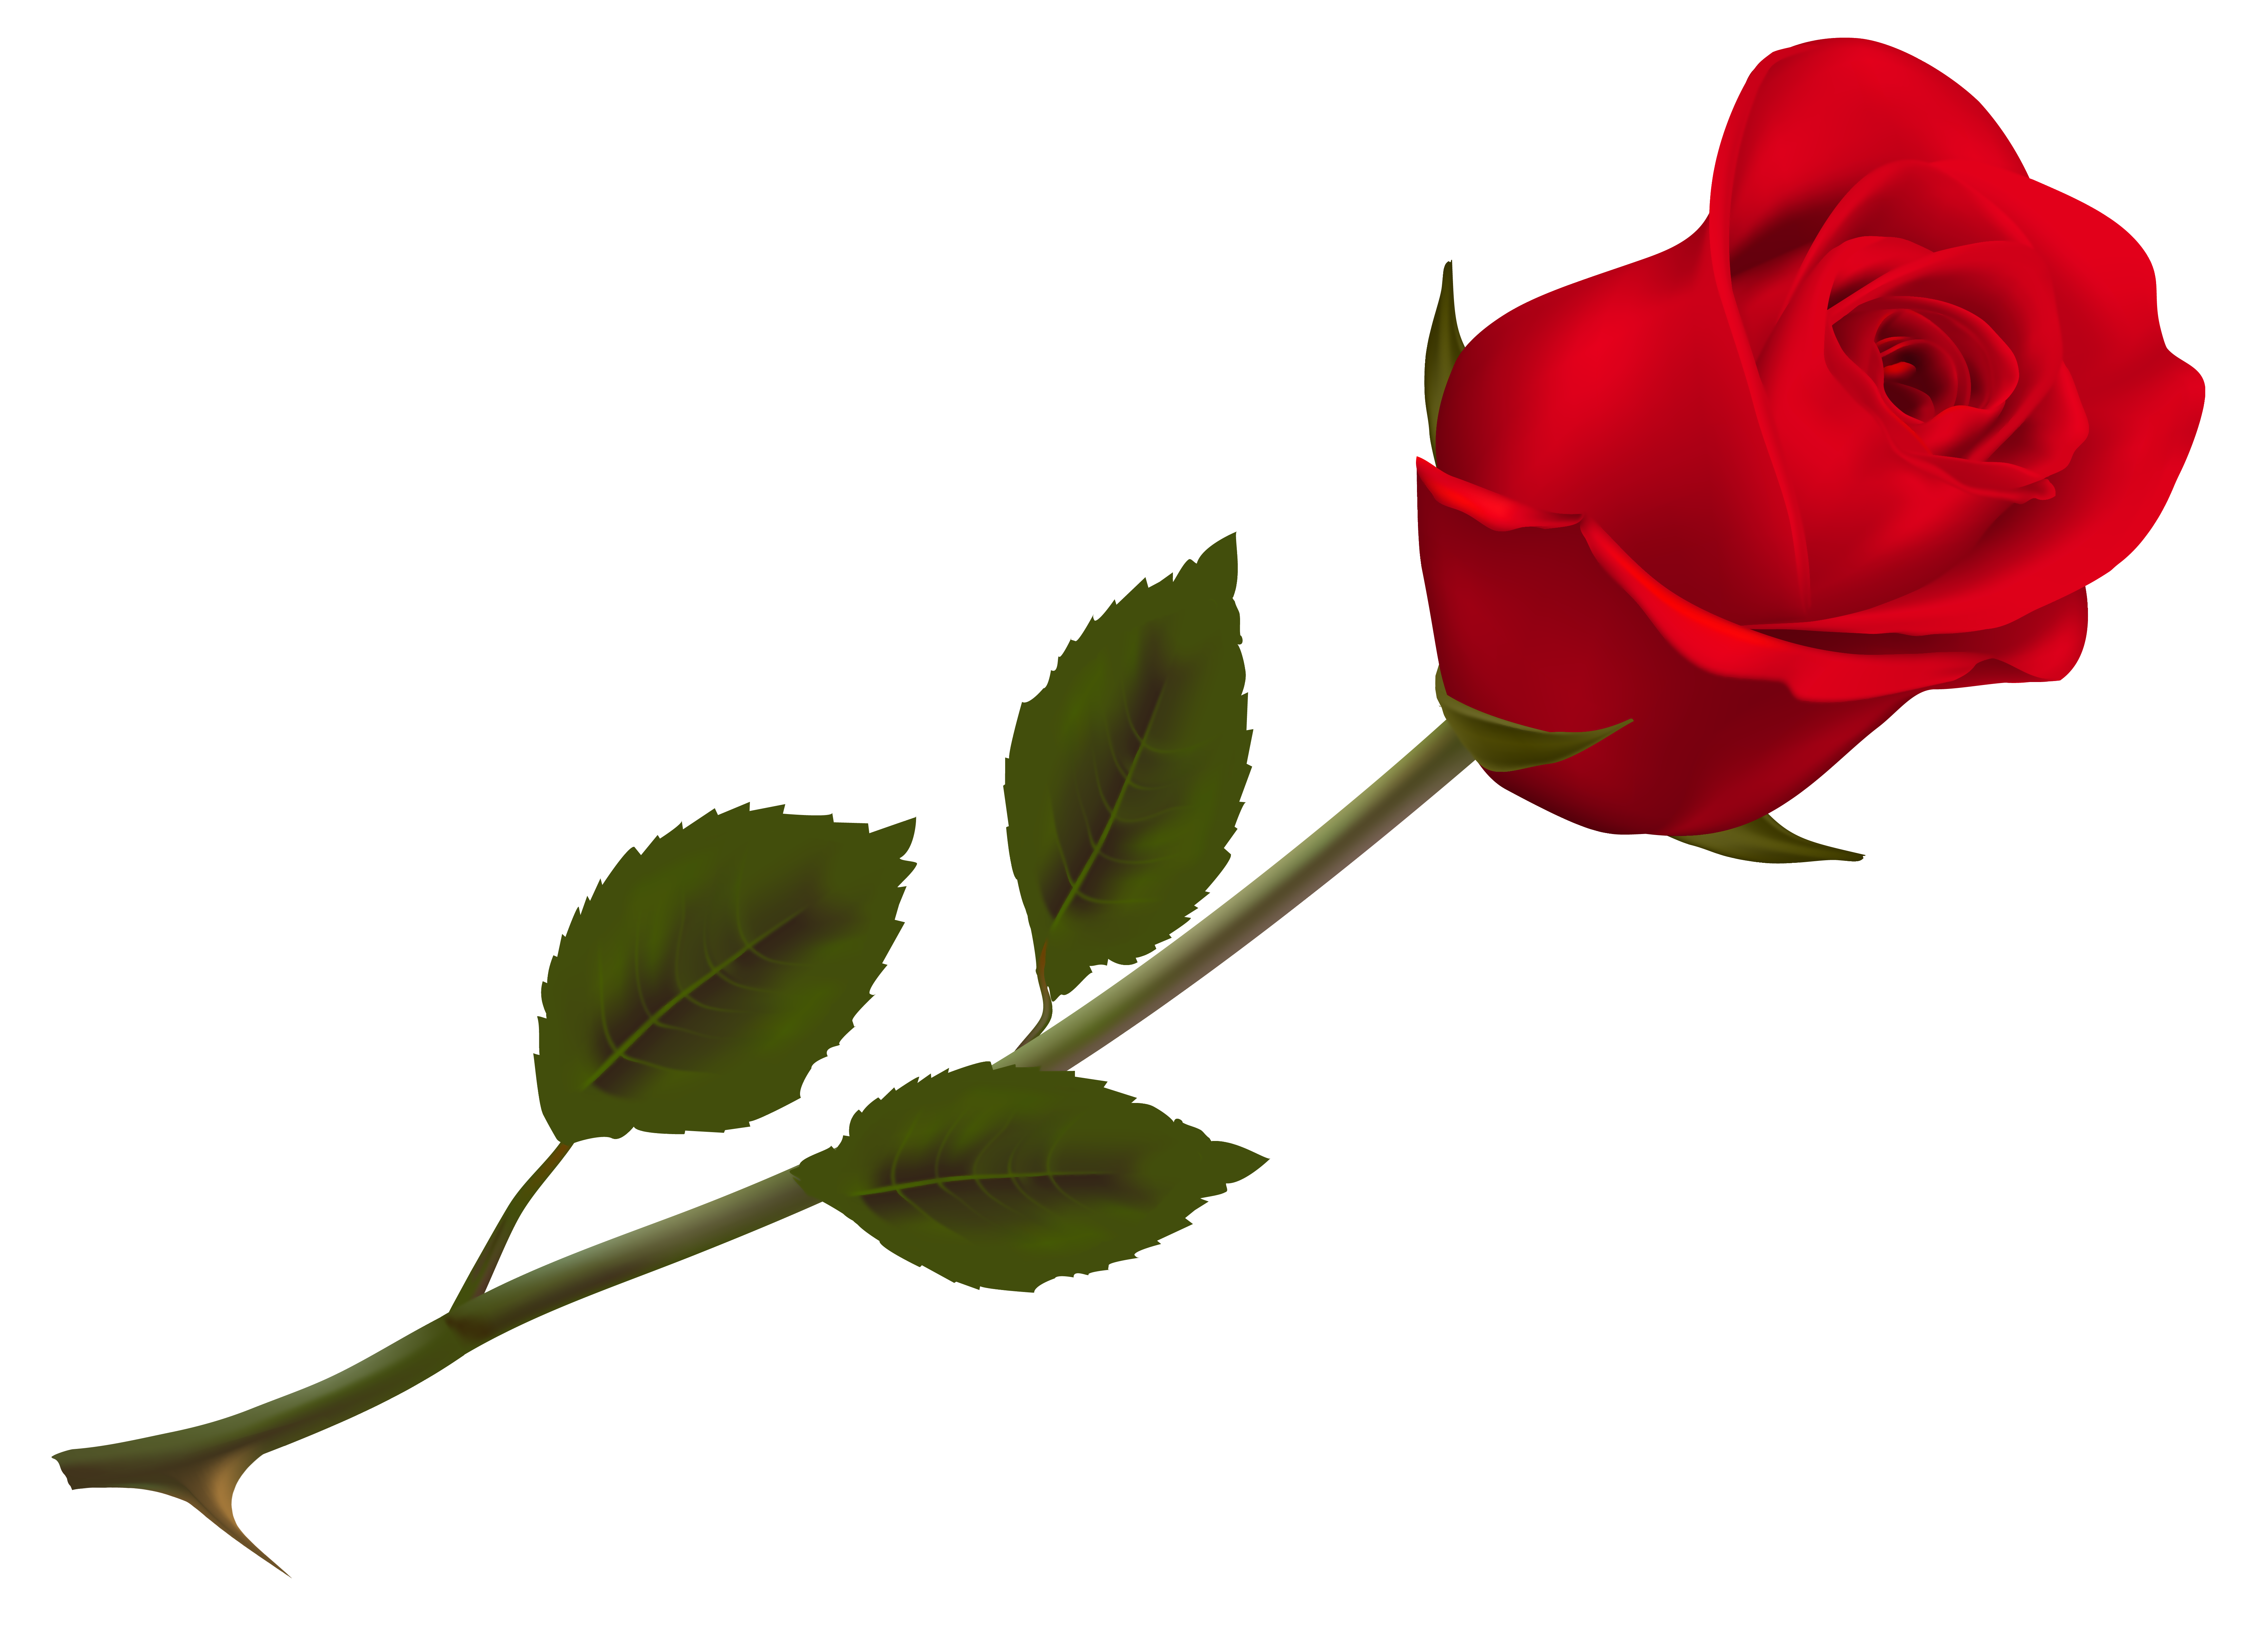 Red rose png. Transparent beautiful picture gallery